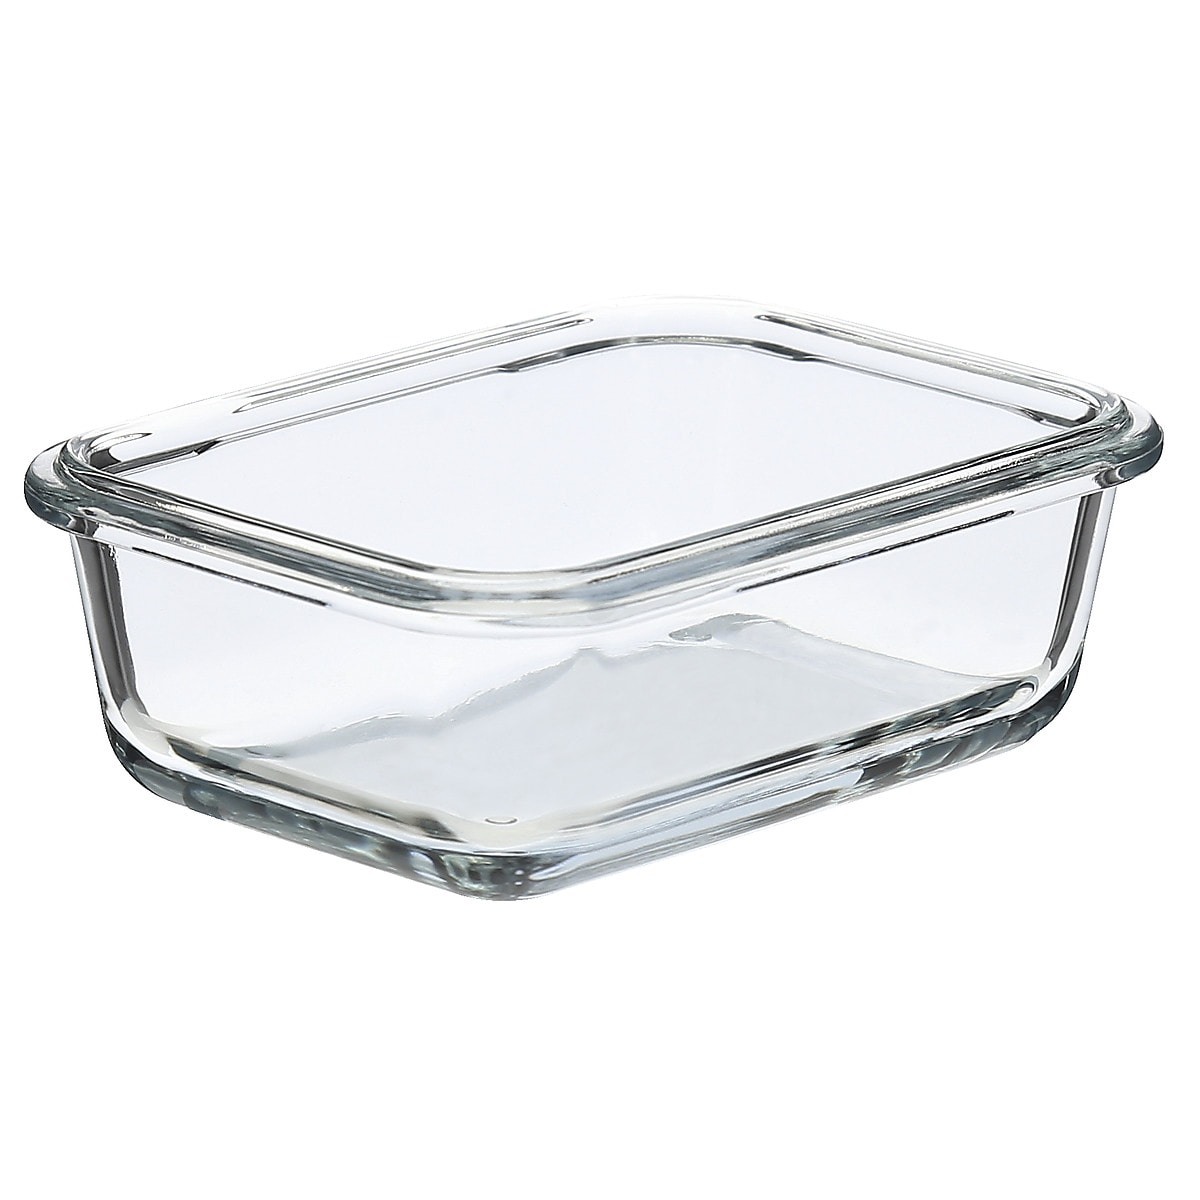 Glass Food Container, Coline